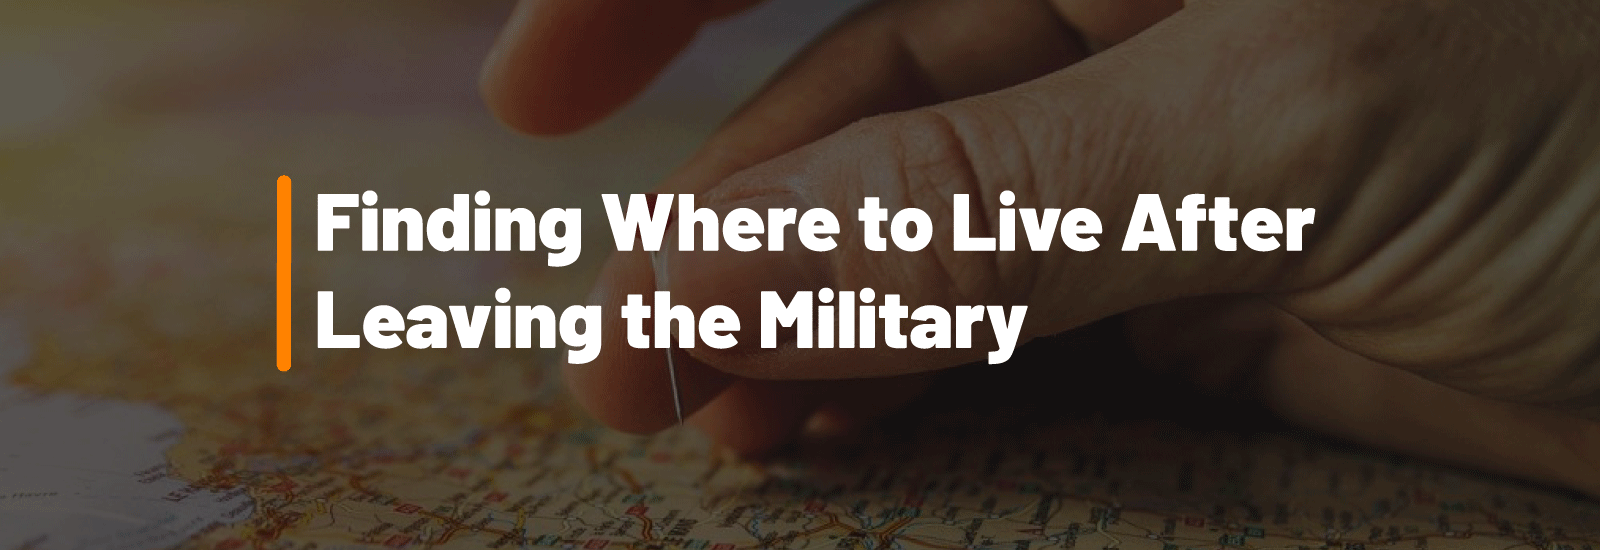 Finding Where to Live After Leaving the Military